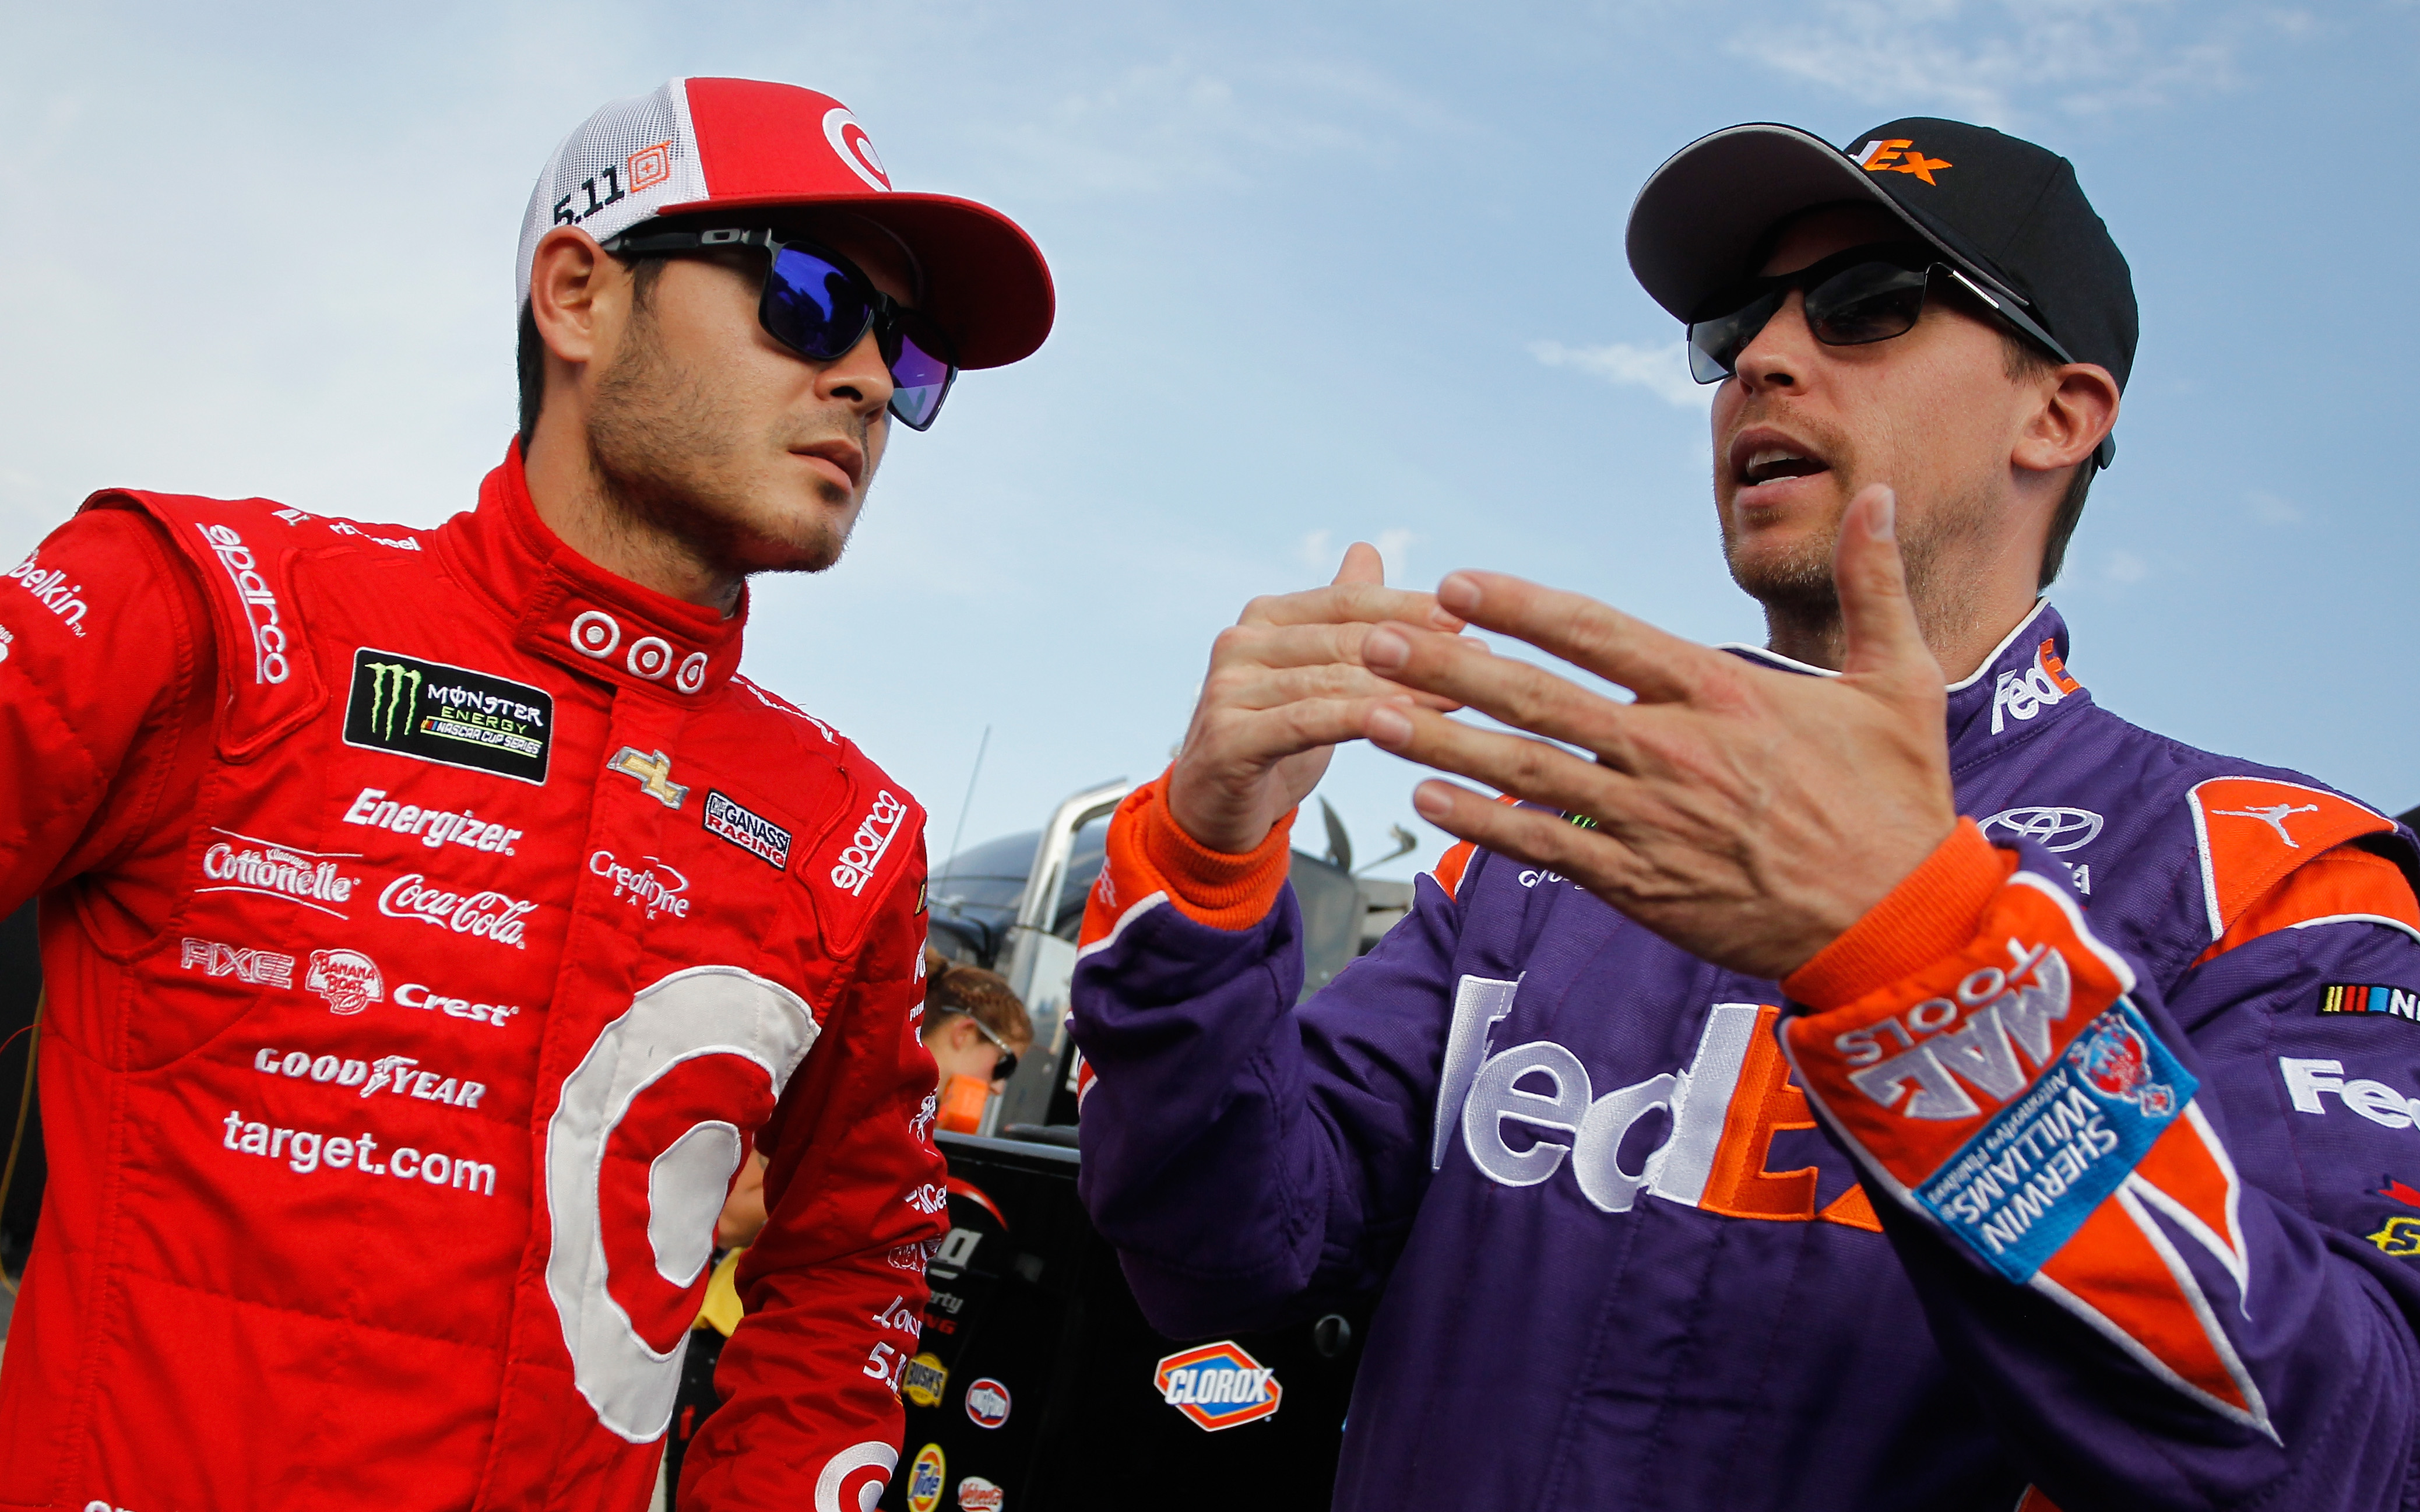 CHARLOTTE, NC - MAY 19:  Kyle Larson, driver of the #42 Target Chevrolet, talks with Denny Hamlin, driver of the #11 FedEx Ground Toyota, during qualifying for the Monster Energy NASCAR All-Star Race at Charlotte Motor Speedway on May 19, 2017 in Charlotte, North Carolina.  (Photo by Brian Lawdermilk/Getty Images)